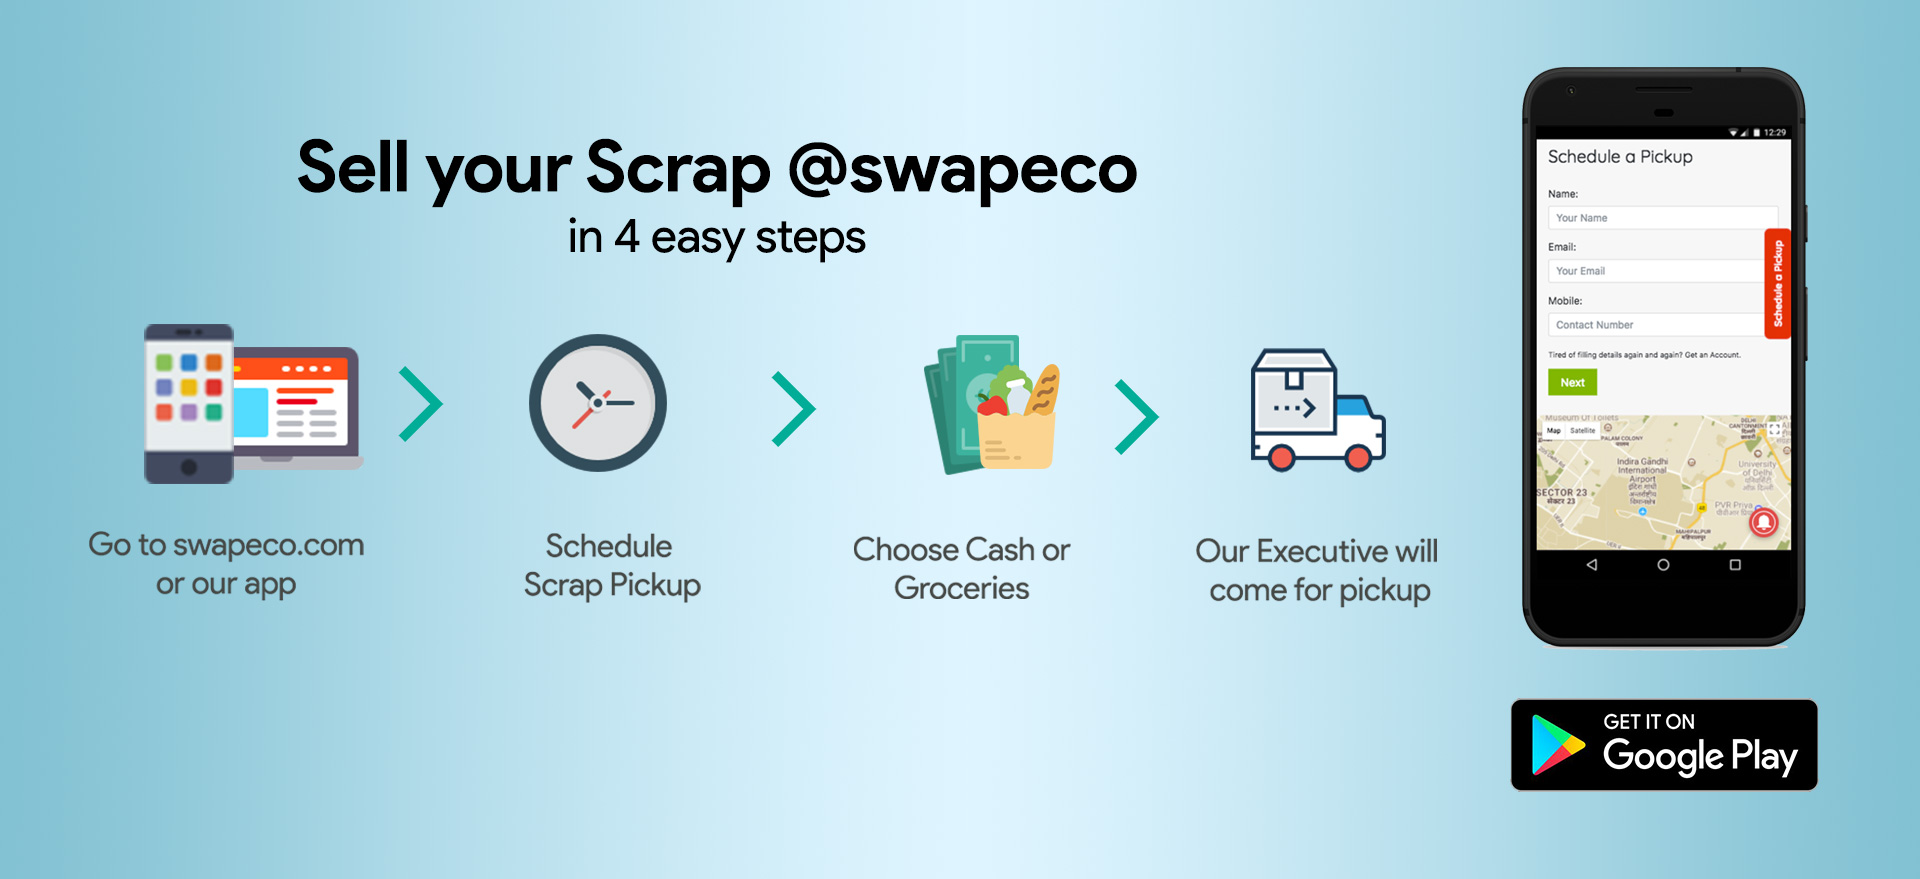 Schedule your Pickup in 4 easy steps